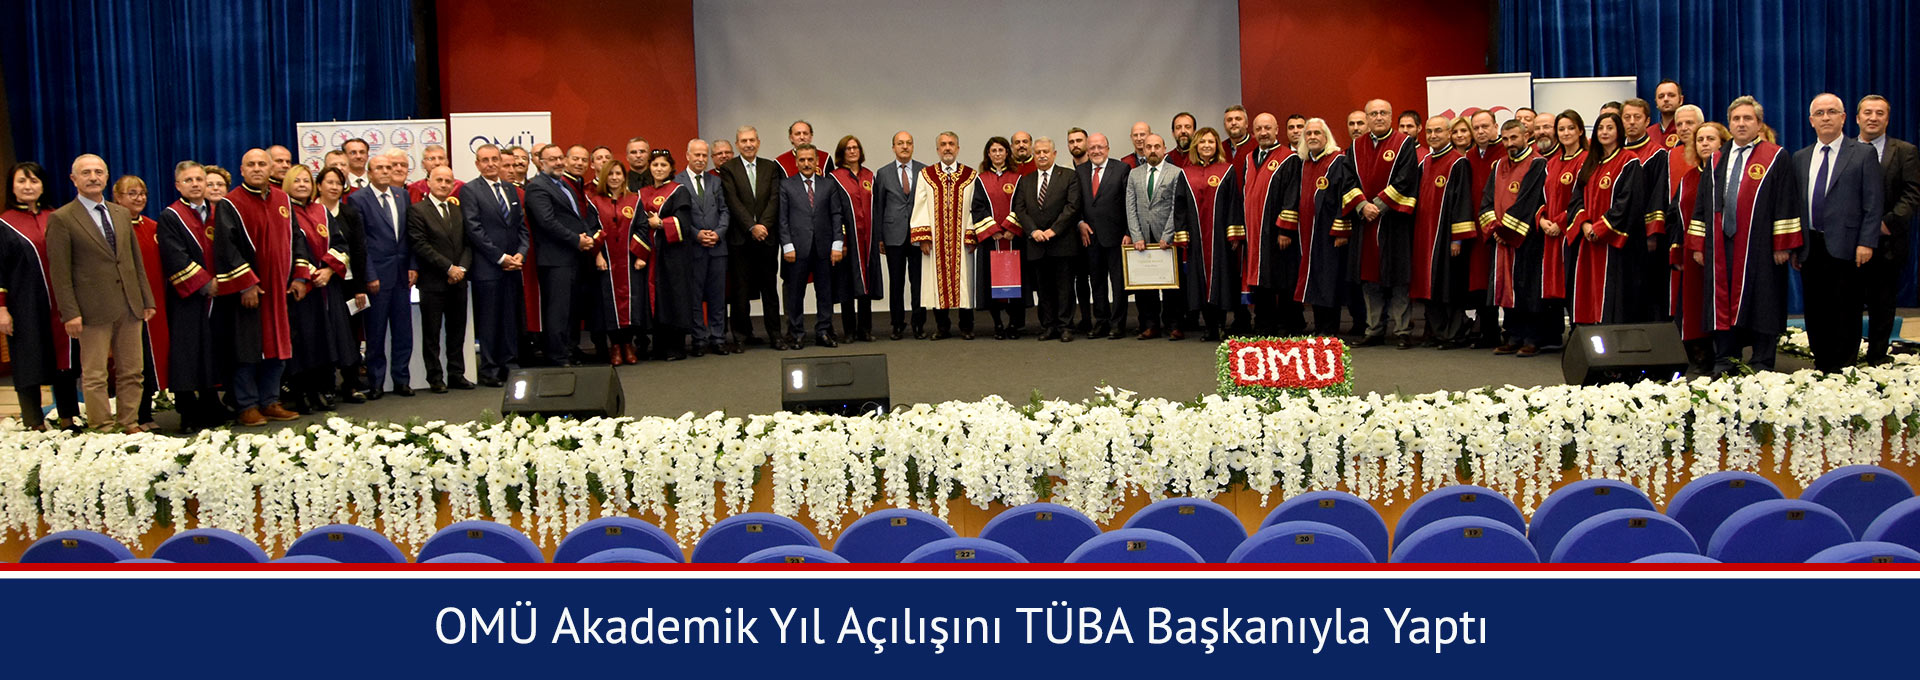 OMU Celebrated the New Academic Year Together With the President of TUBA